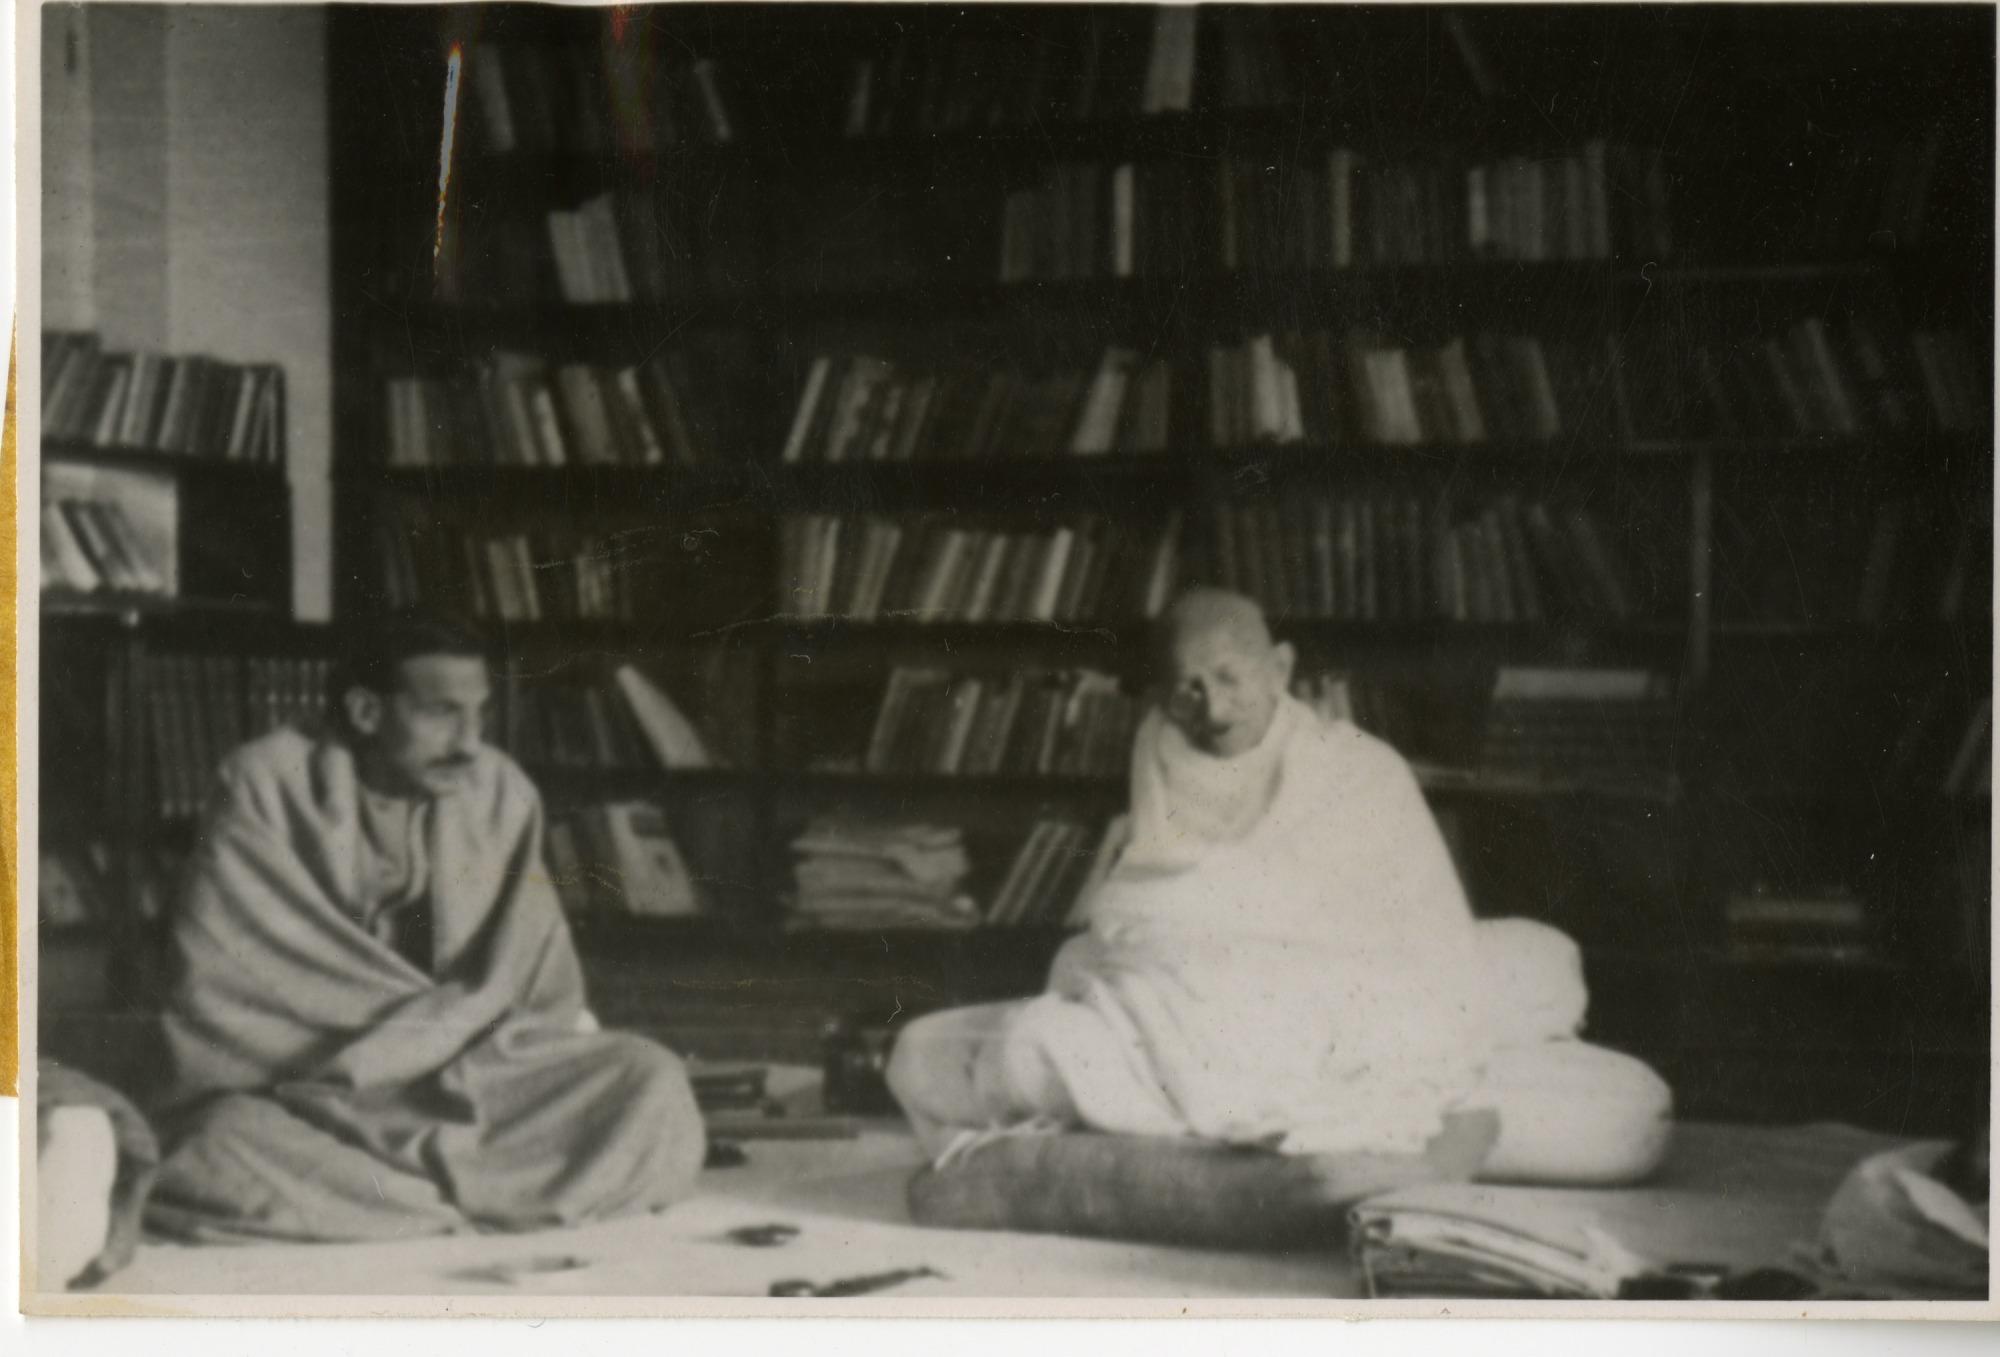 Mahatma Gandhi (1869-1948), 1939, Smithsonian Institution Archives, SIA RU007091 [SIA2007-0002].